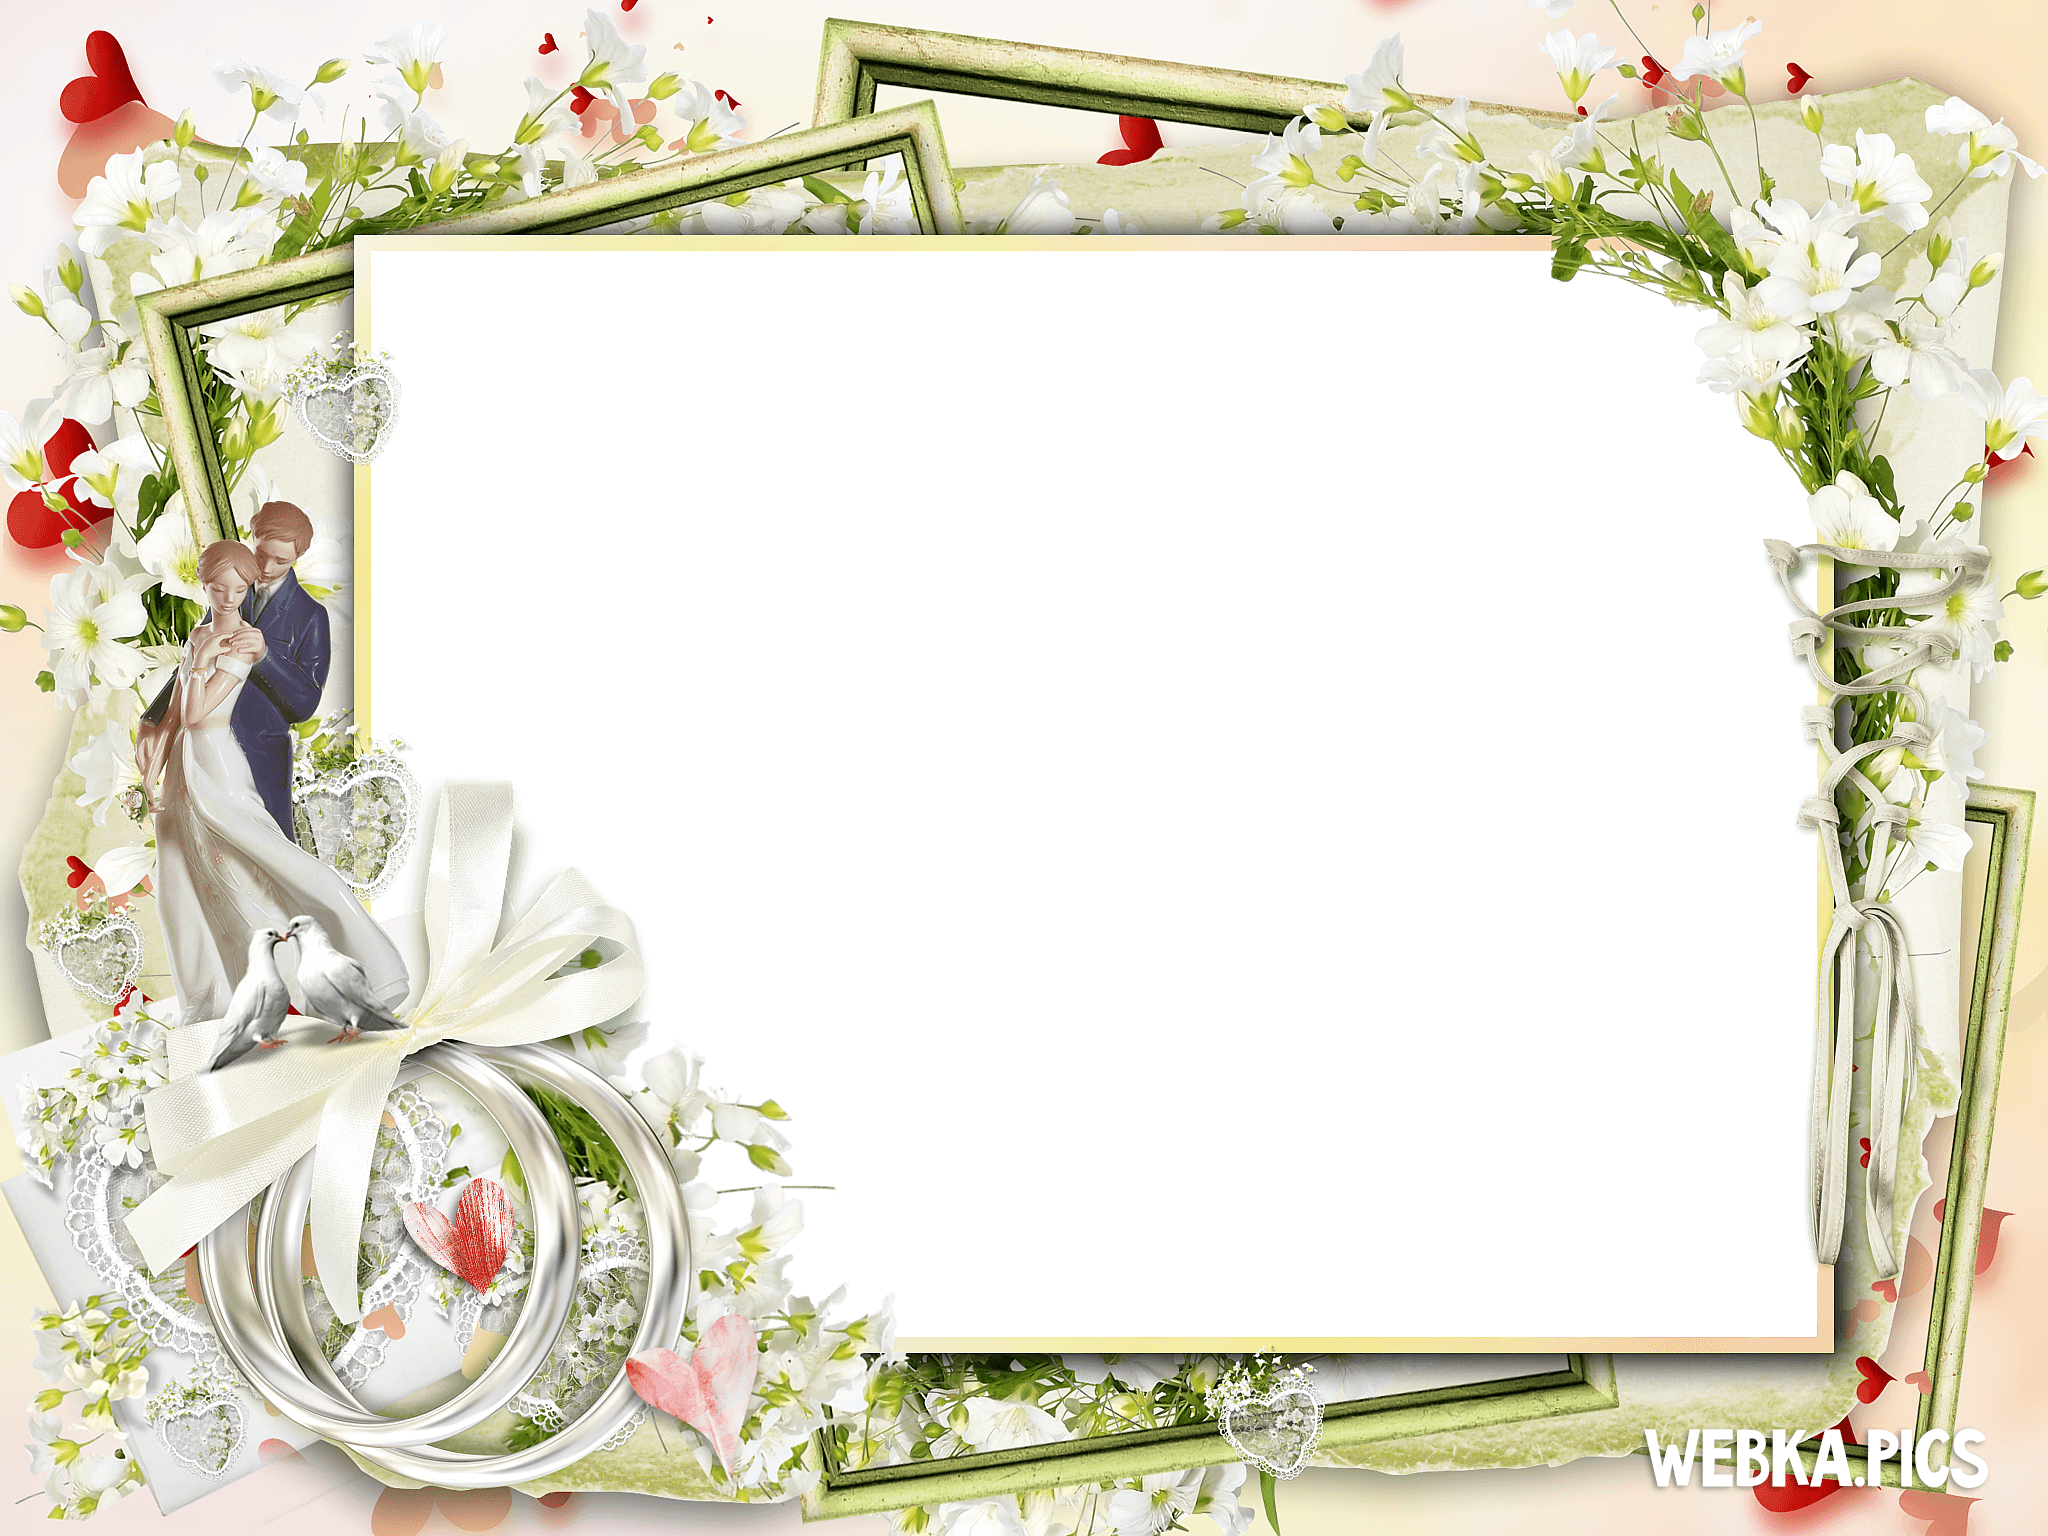 webka photo frames online app for free With wedding anniversary photo frames